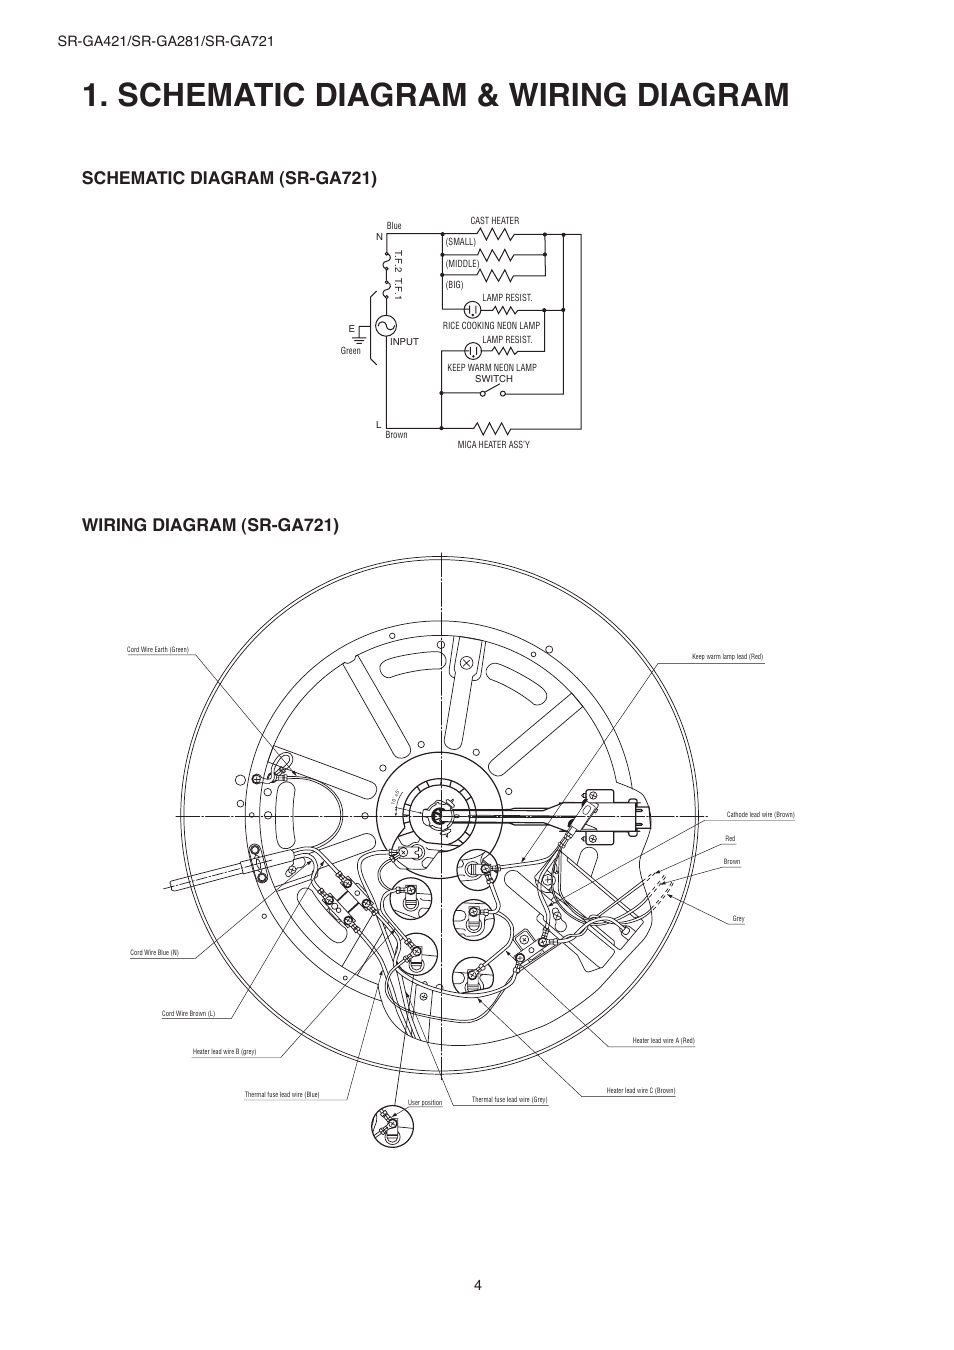 panasonic sr ga721 page4 schematic diagram & wiring diagram panasonic sr ga721 user panasonic wiring diagram at bakdesigns.co